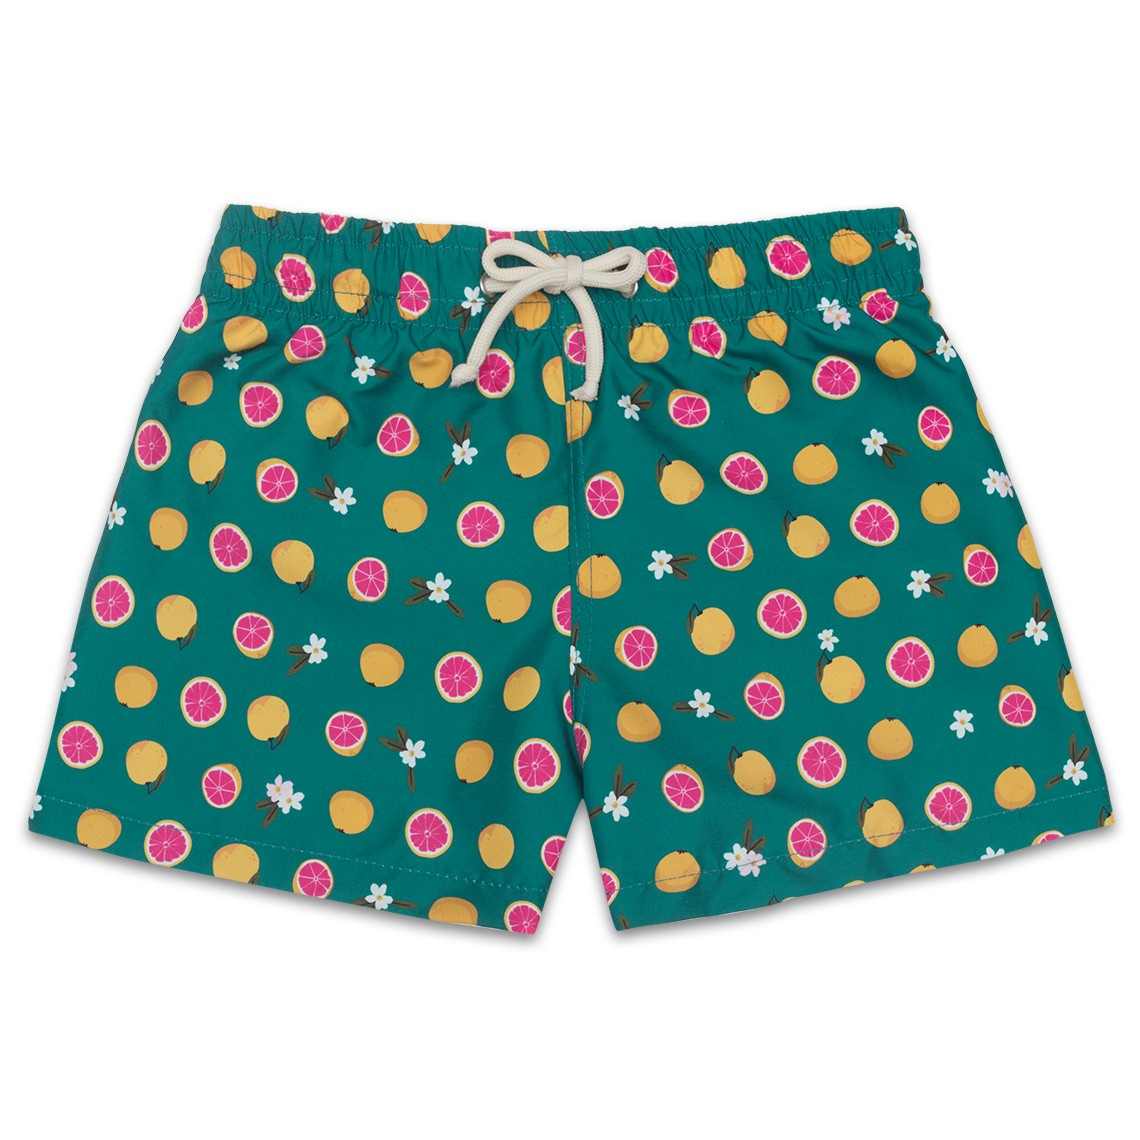 9ef26a1fab Boy Swim short Green Grapefruit 2 to 8 years - Ocoly